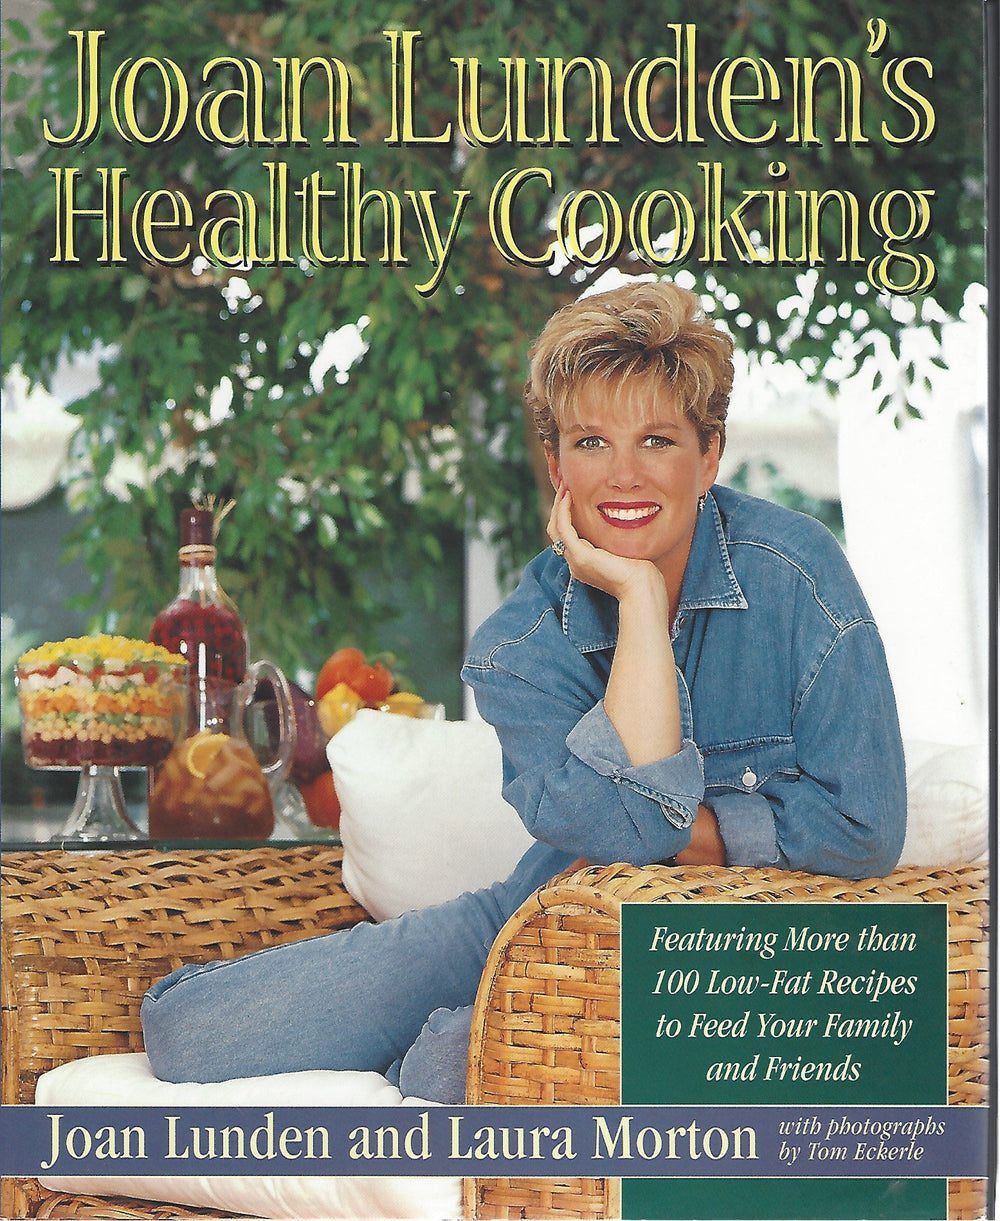 Joan Lunden's Healthy Cooking (with Laura Morton)  Hardcover 1996